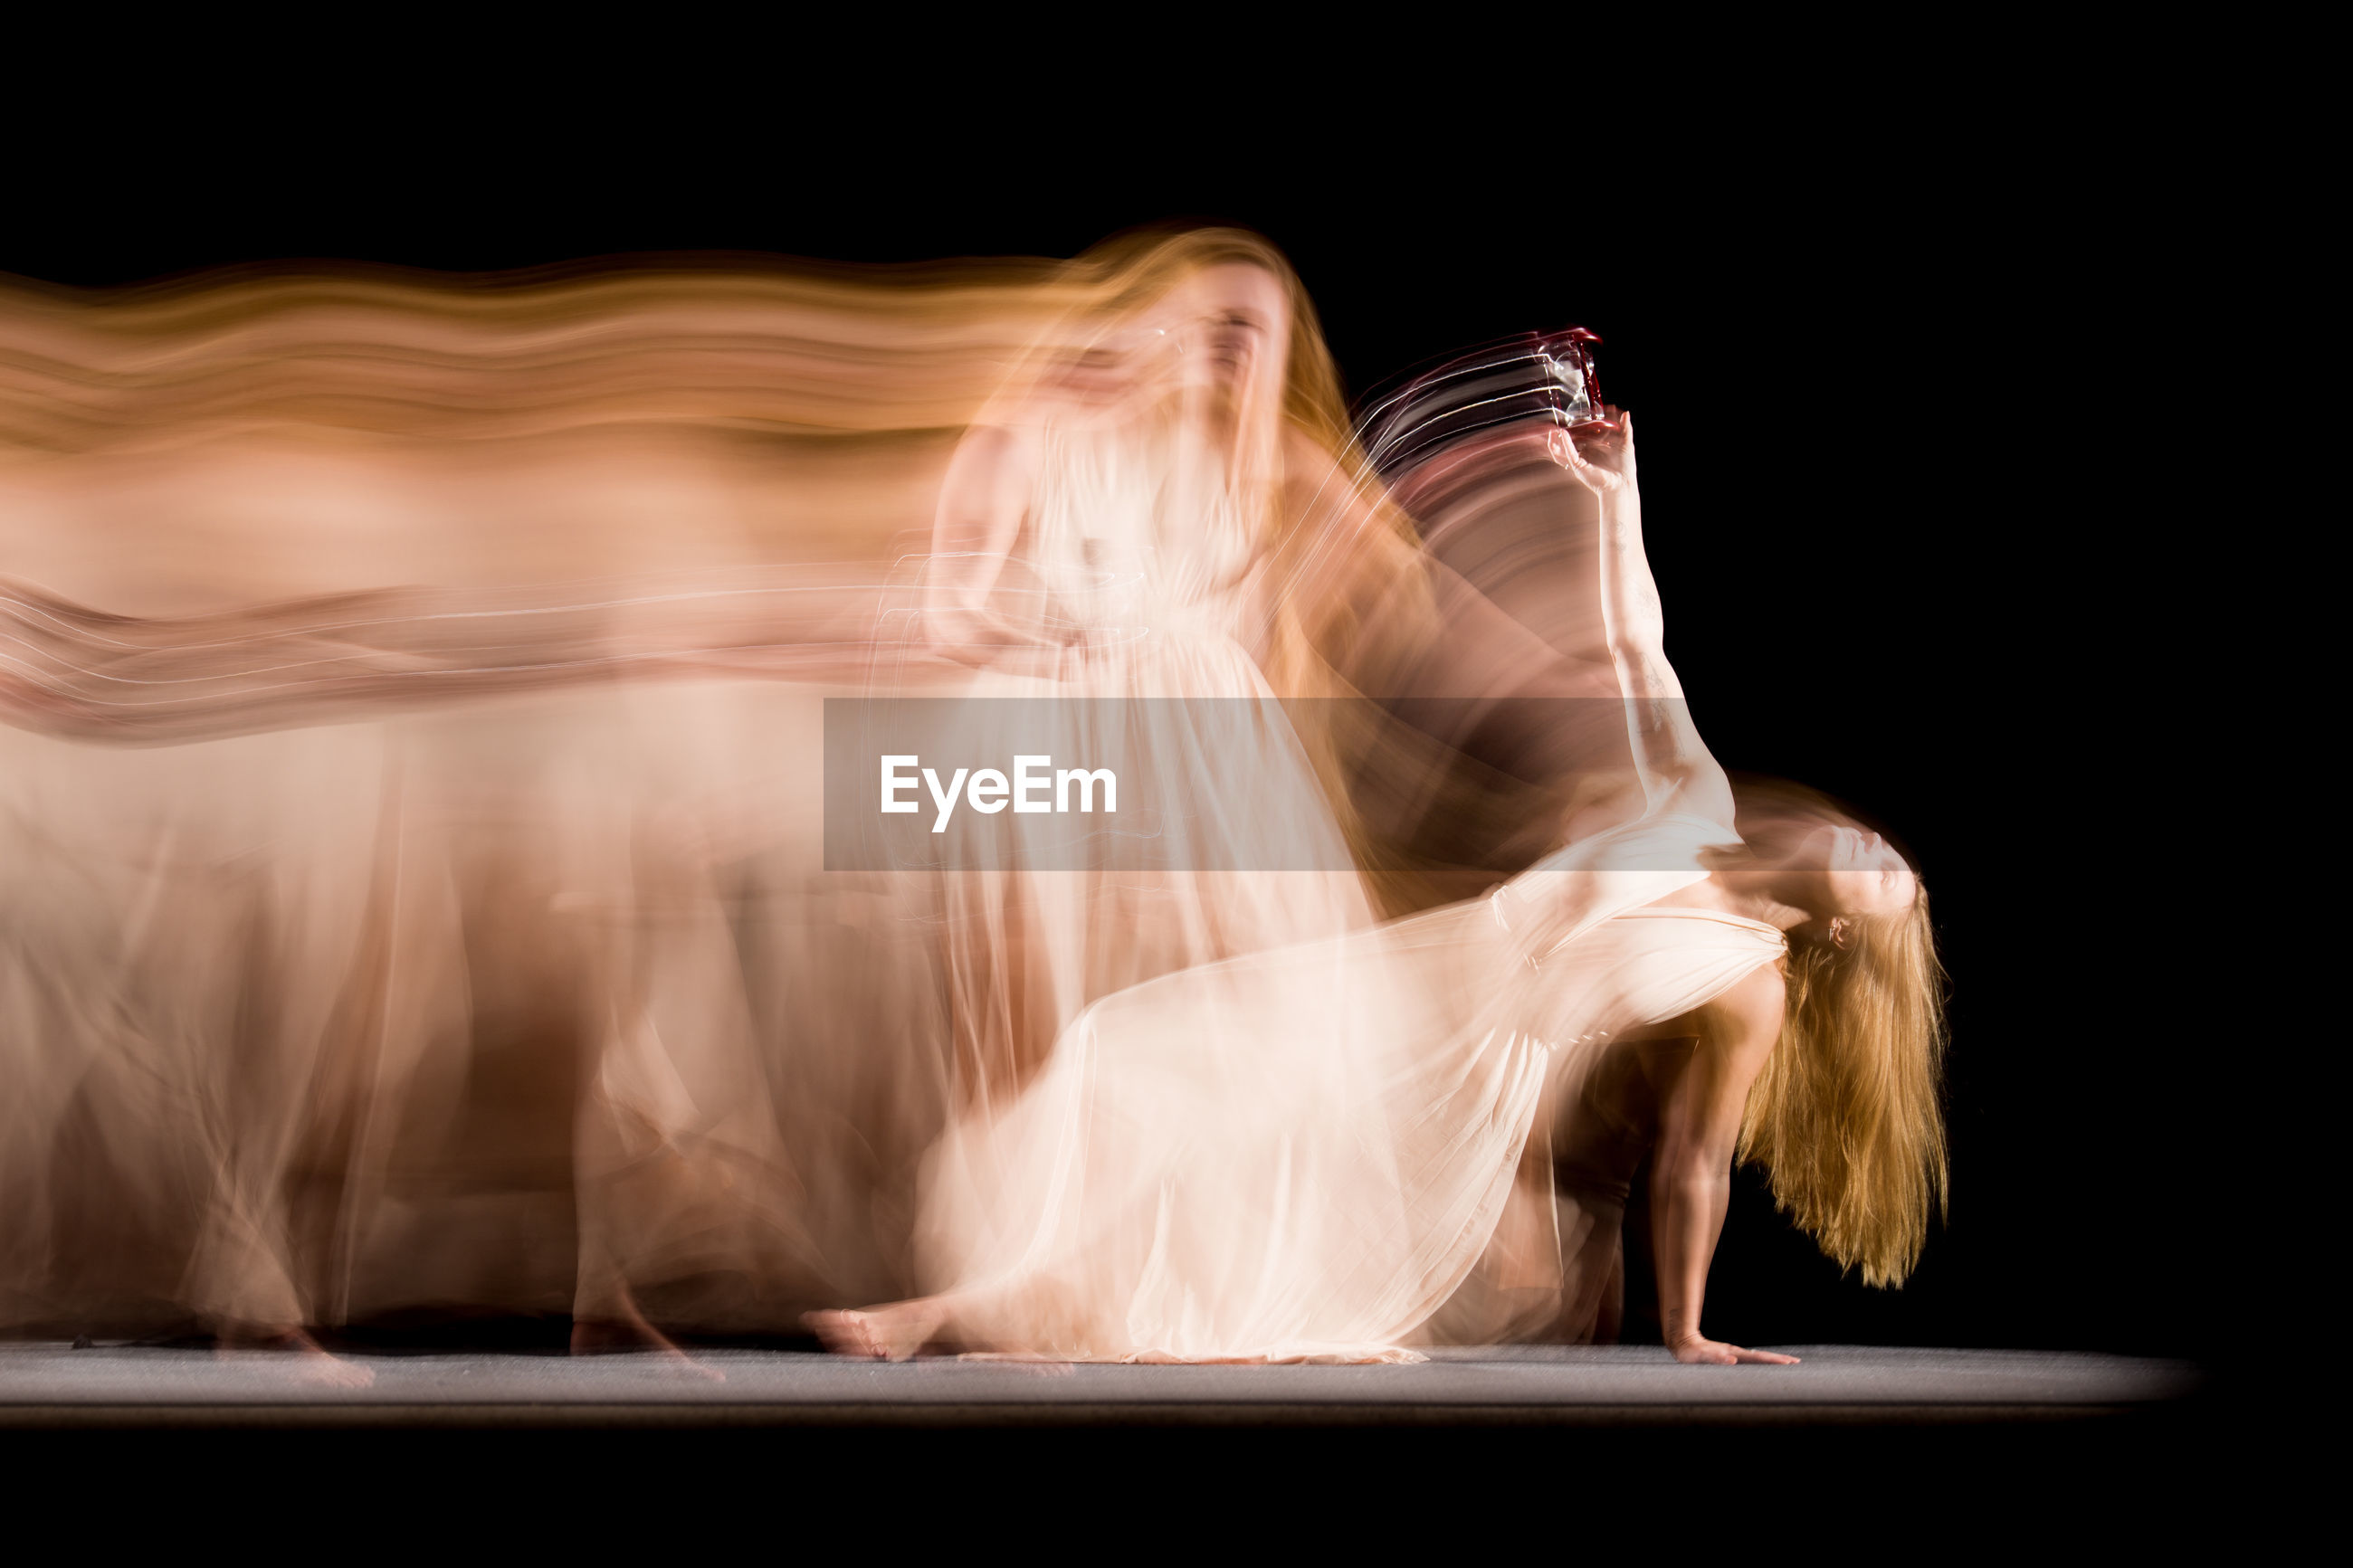 Blurred motion of woman dancing against black background